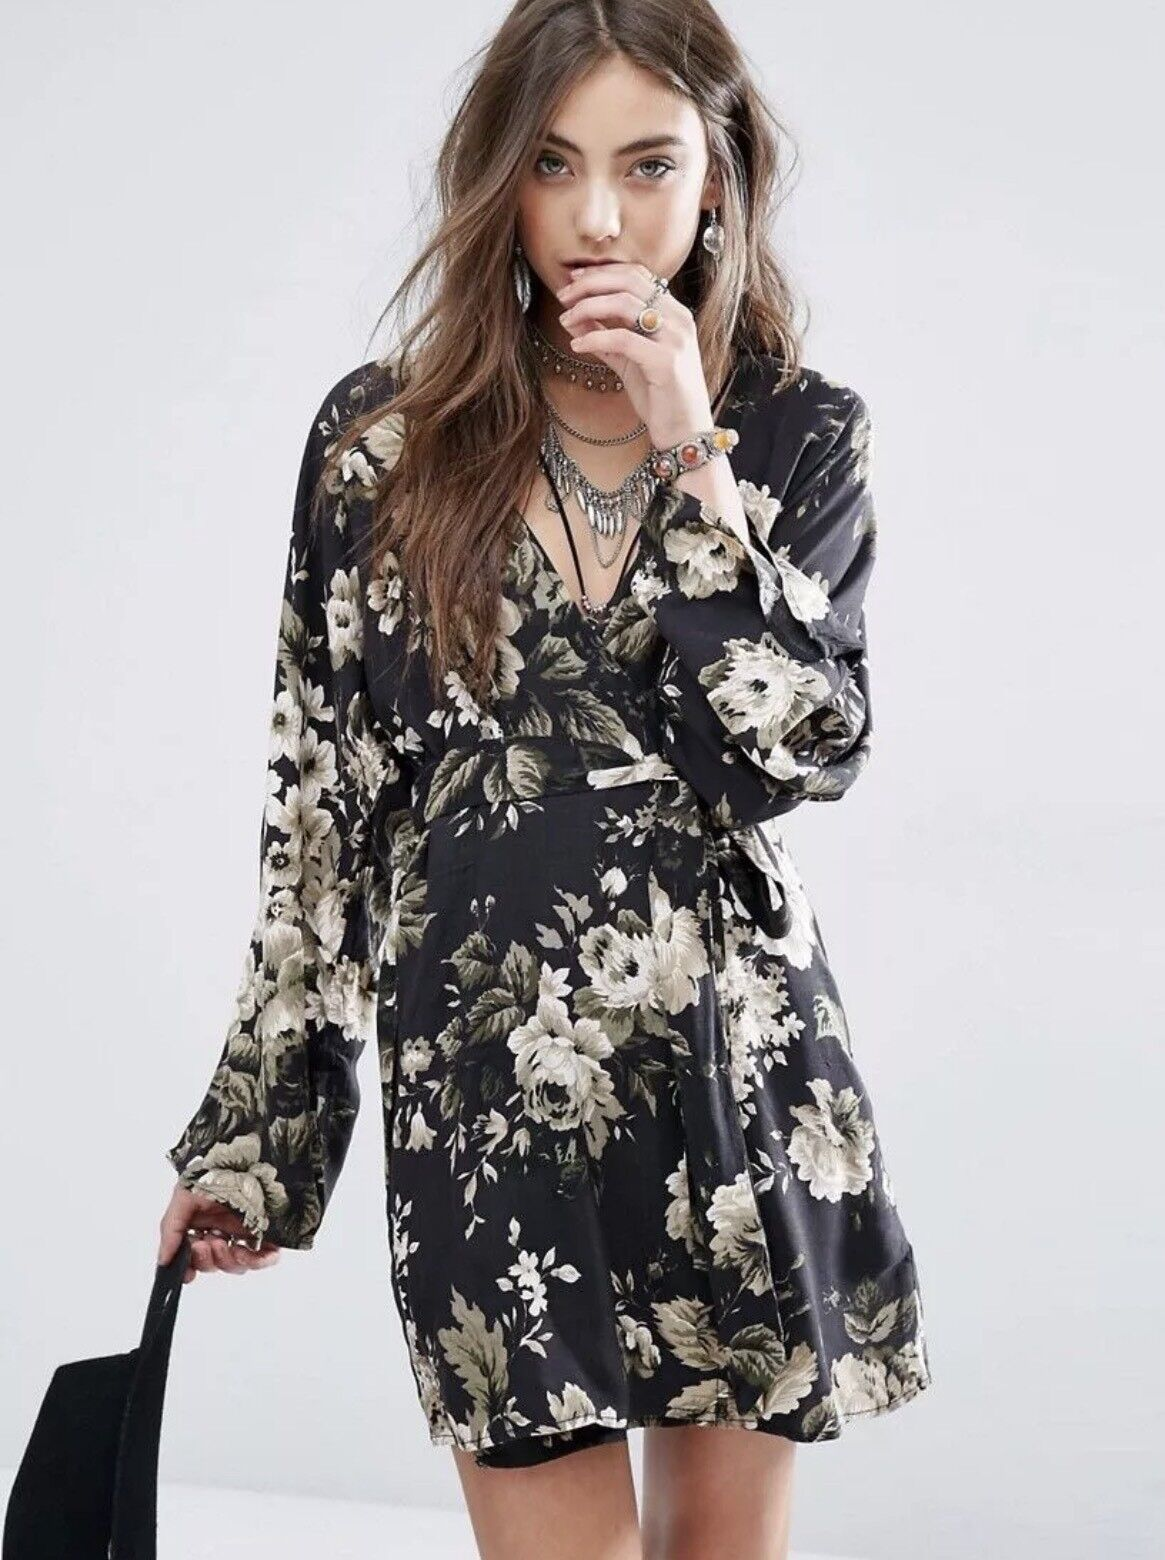 NWT RALPH LAUREN DENIM&SUPPLY WOMENS FLORAL WRAP SILHOUETTE KIMONO DRESS SIZE S